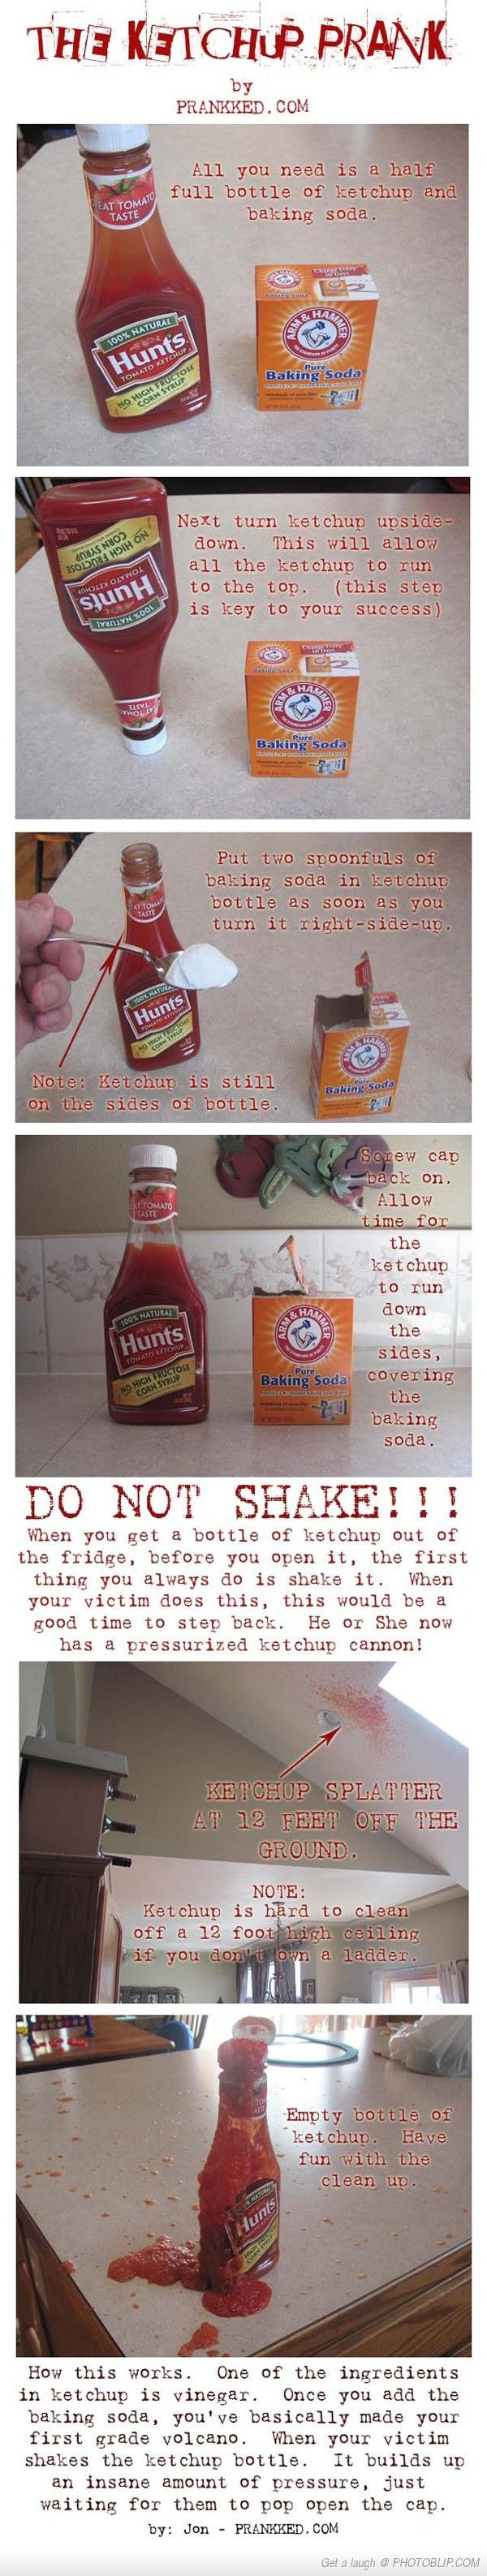 The Ketchup Prank. I LOVE Ketchup but I'd HATE this done to me. haha